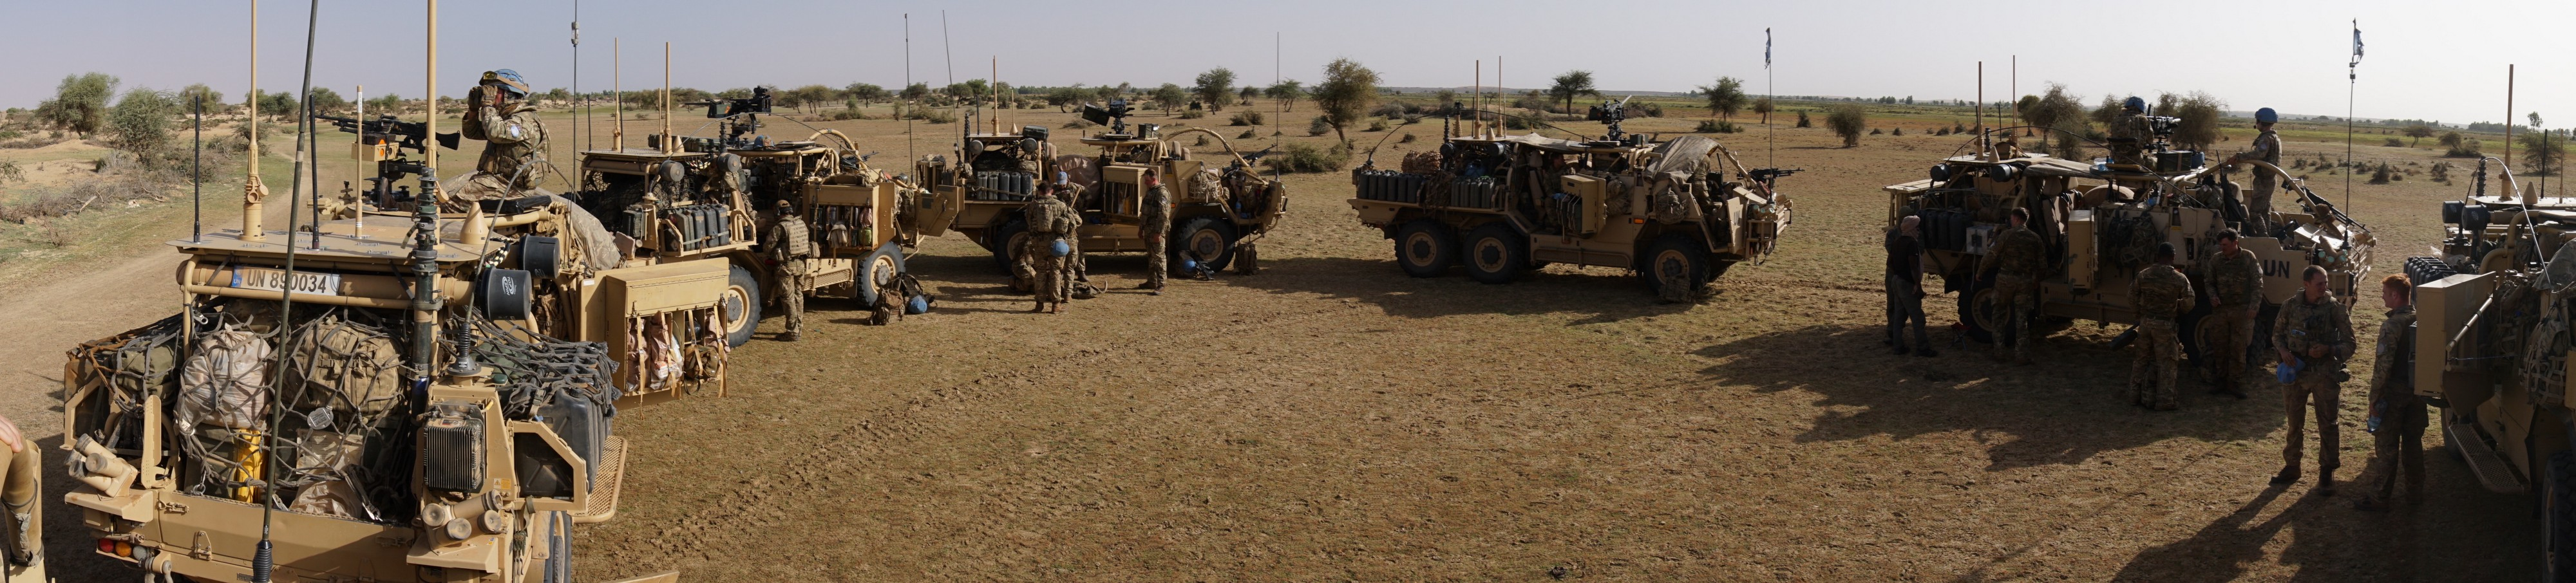 British peacekeepers stop for a break while patrolling through Mali.